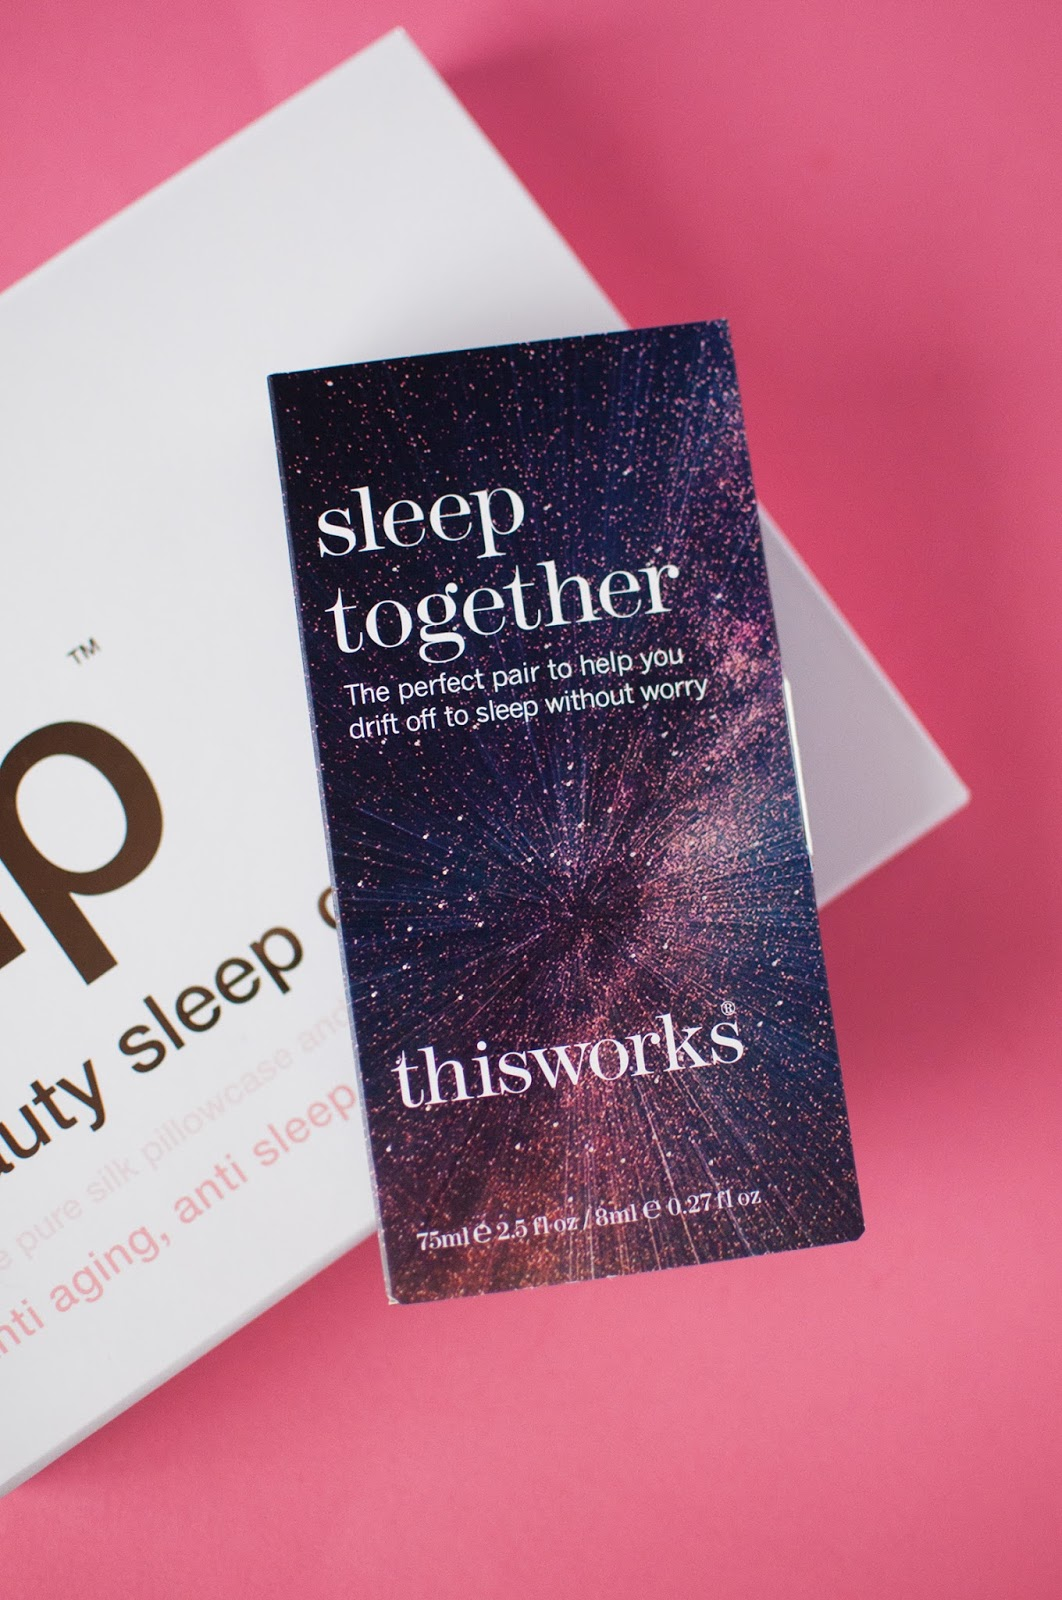 this works gift set, this works sleep together, this works sleep together duo, this works sleep together gift set review, this works pillow spray gift set review, this works pillow spray